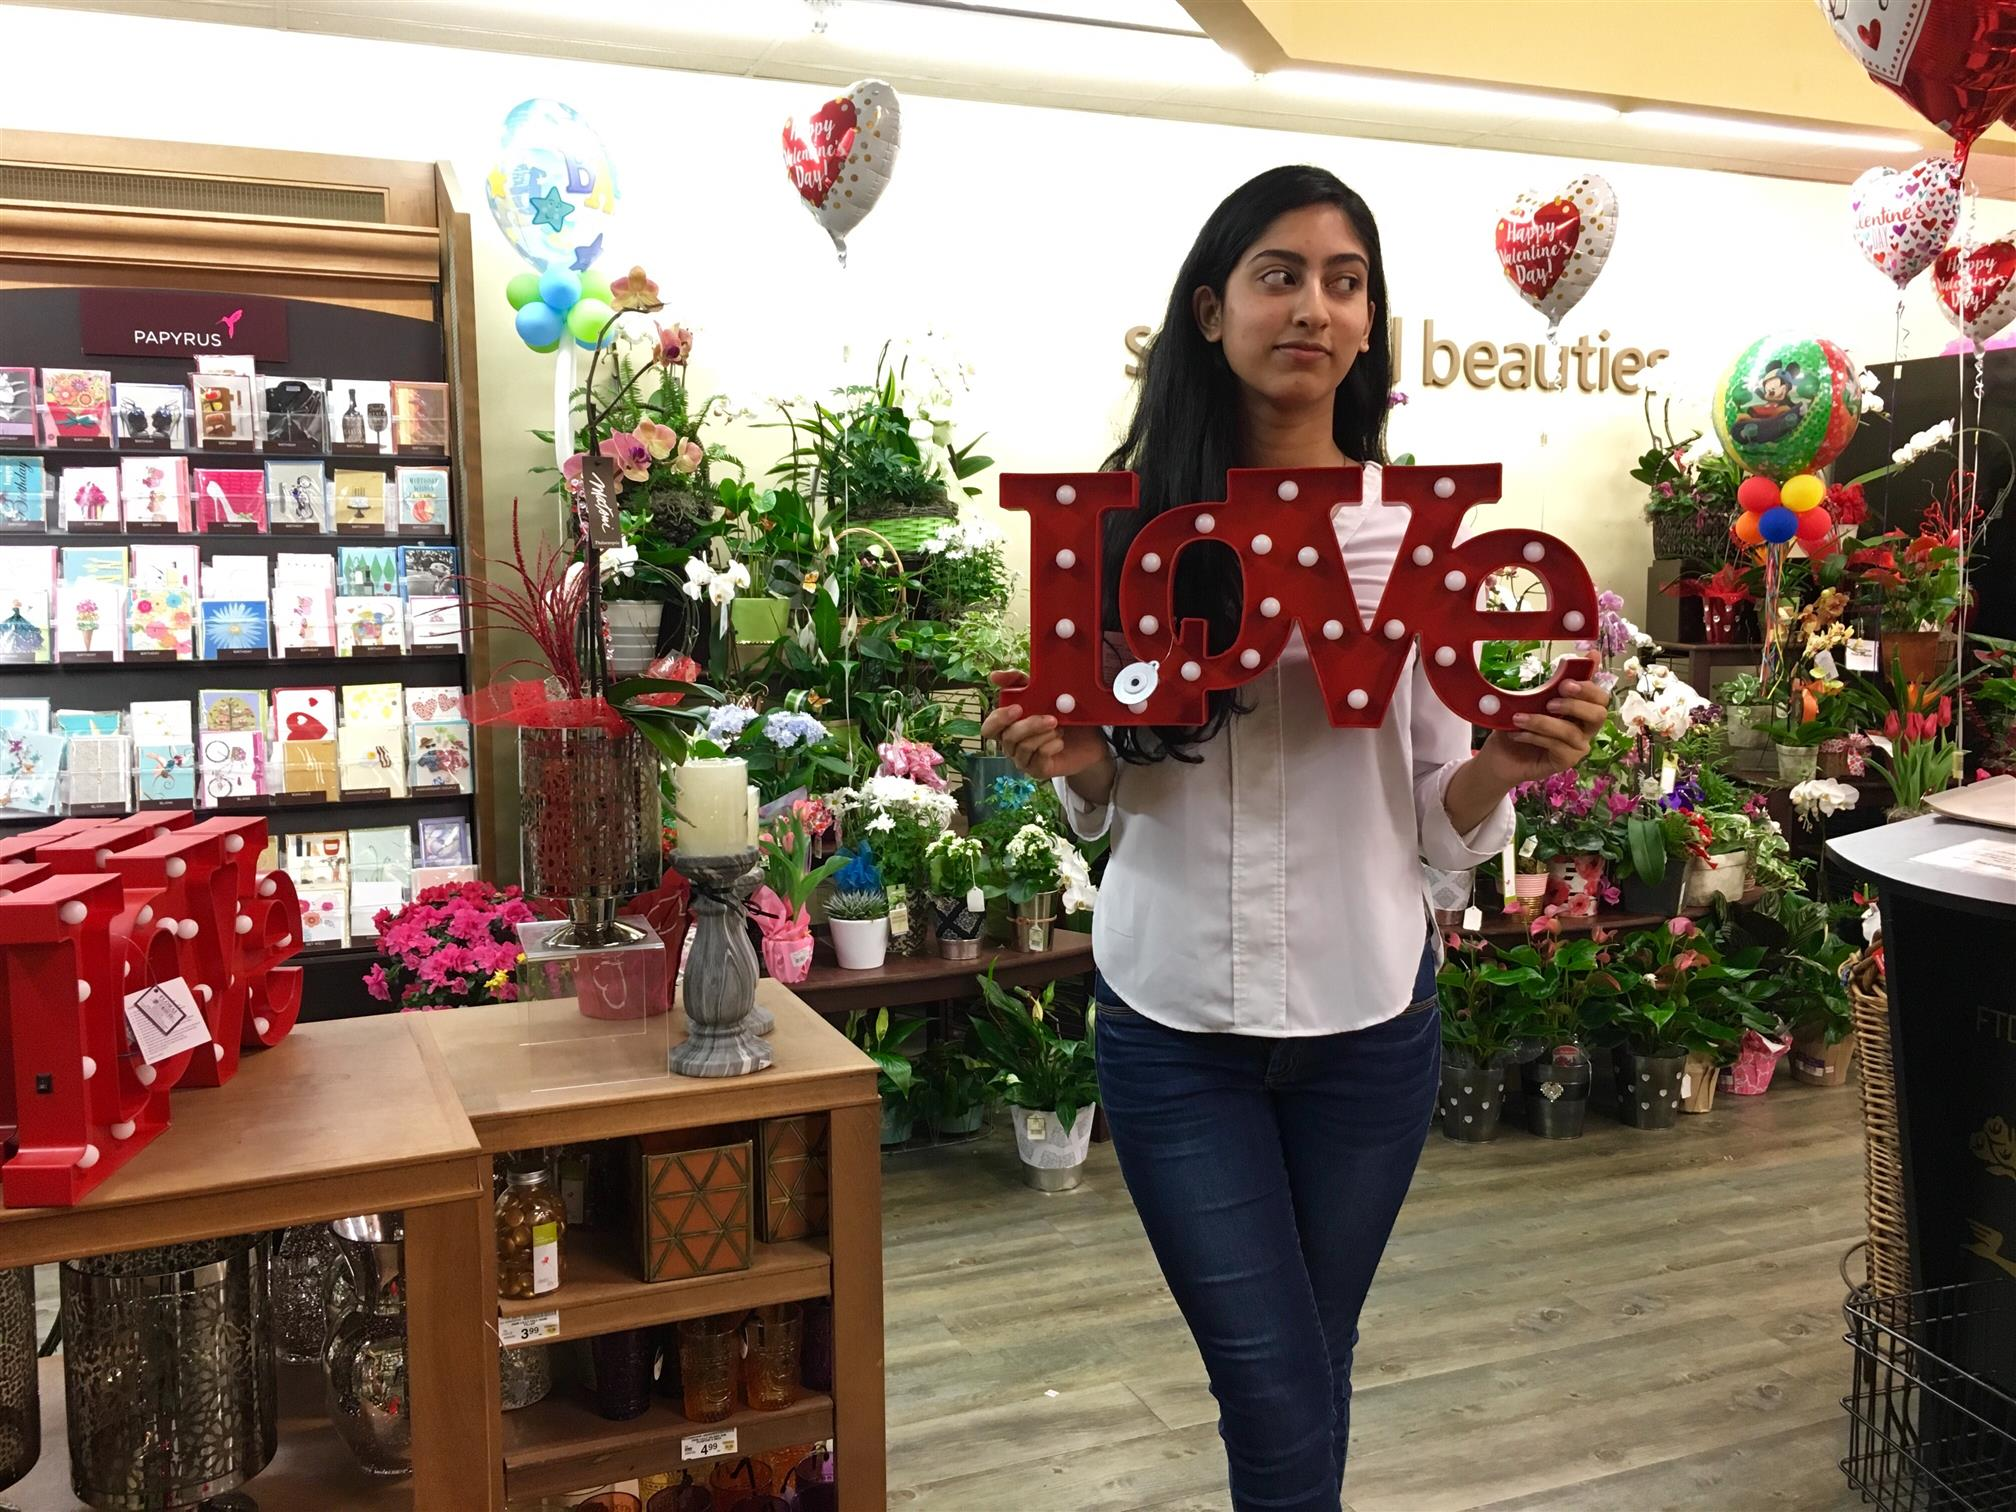 Coppell High School senior Briana Thomas visits local flower shop in Coppell. Thomas contemplates how to practice self love on Valentine's Day, while shopping for flowers and chocolate on Feb. 14, Valentine's Day.